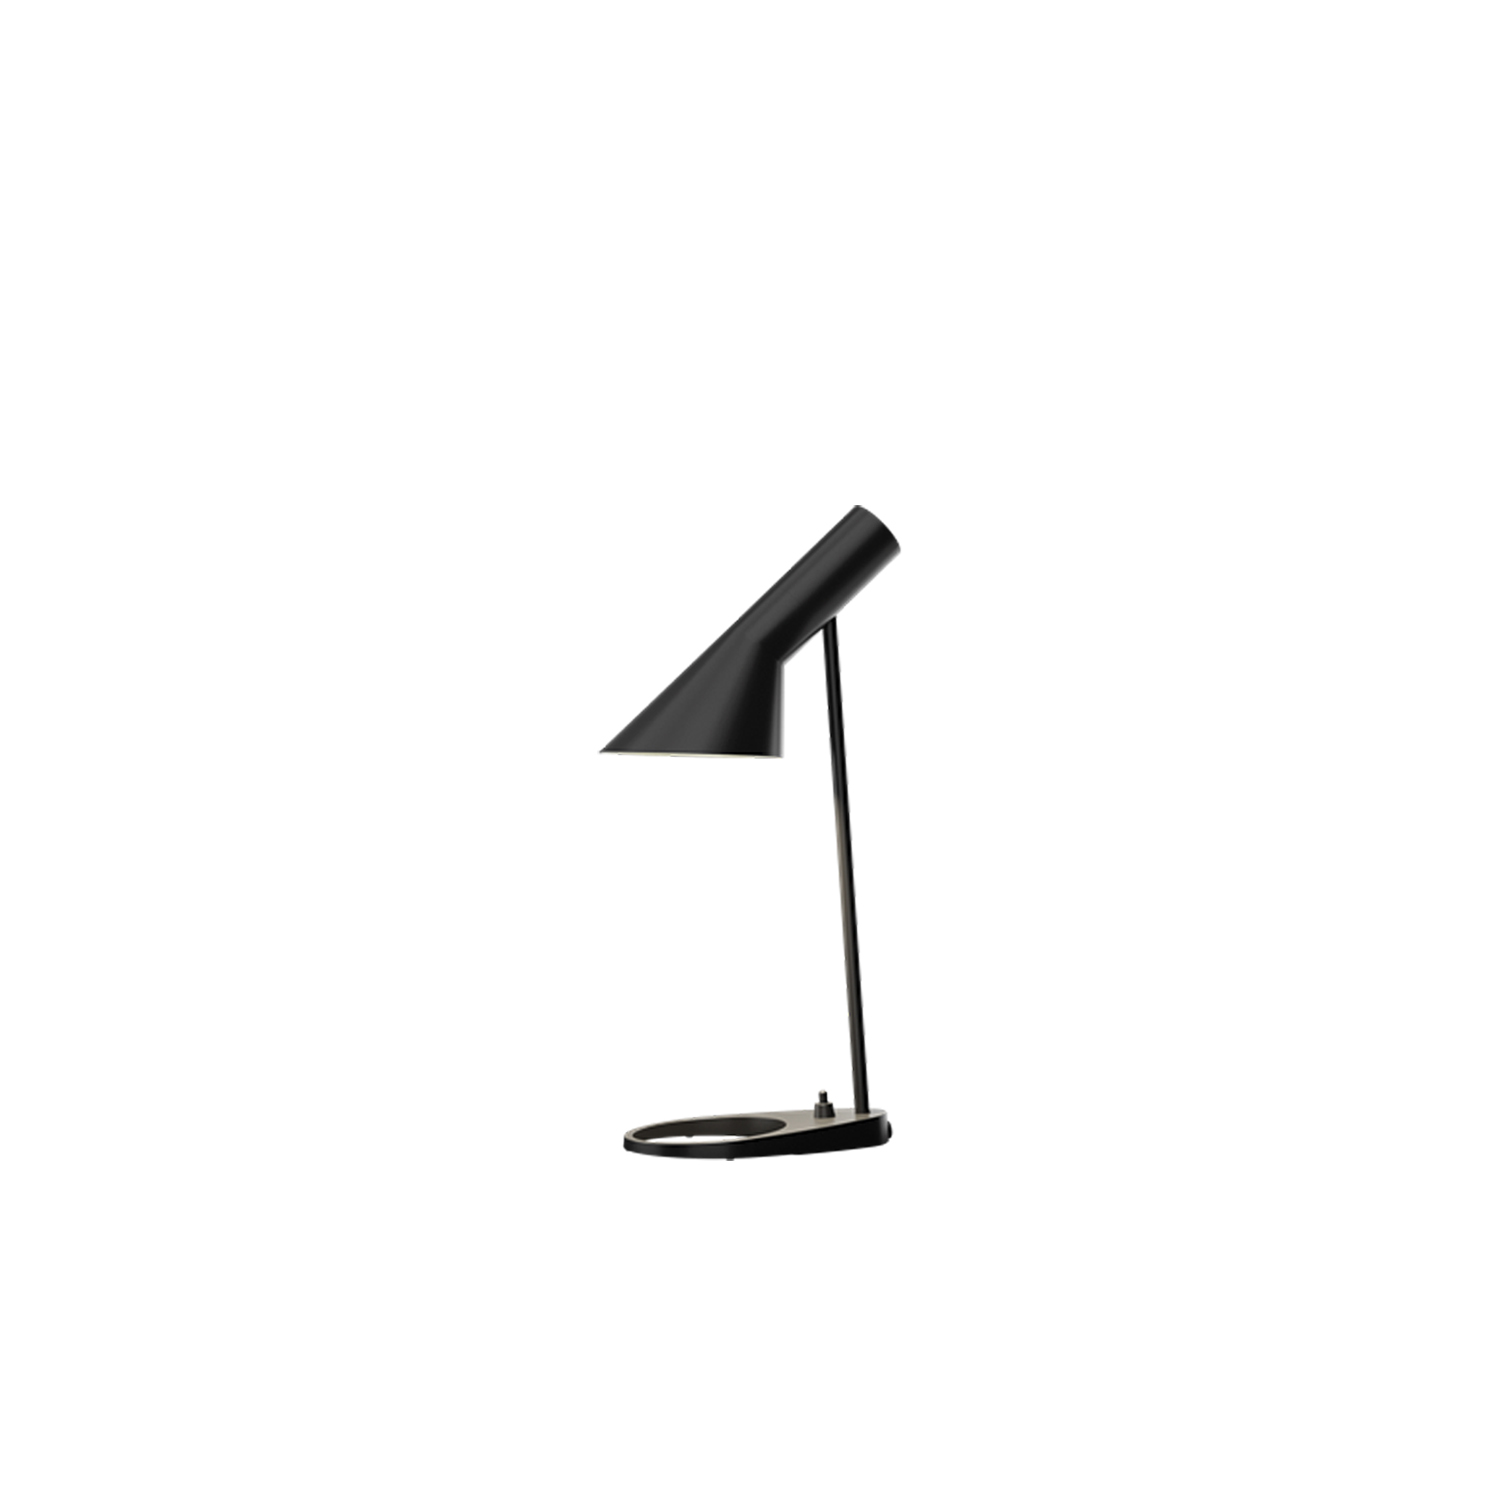 AJ Table Mini Lamp - The fixture emits downward directed light. The angle of the shade can be adjusted to optimize light distribution. The shade is painted white on the inside to ensure a soft comfortable light.   | Matter of Stuff